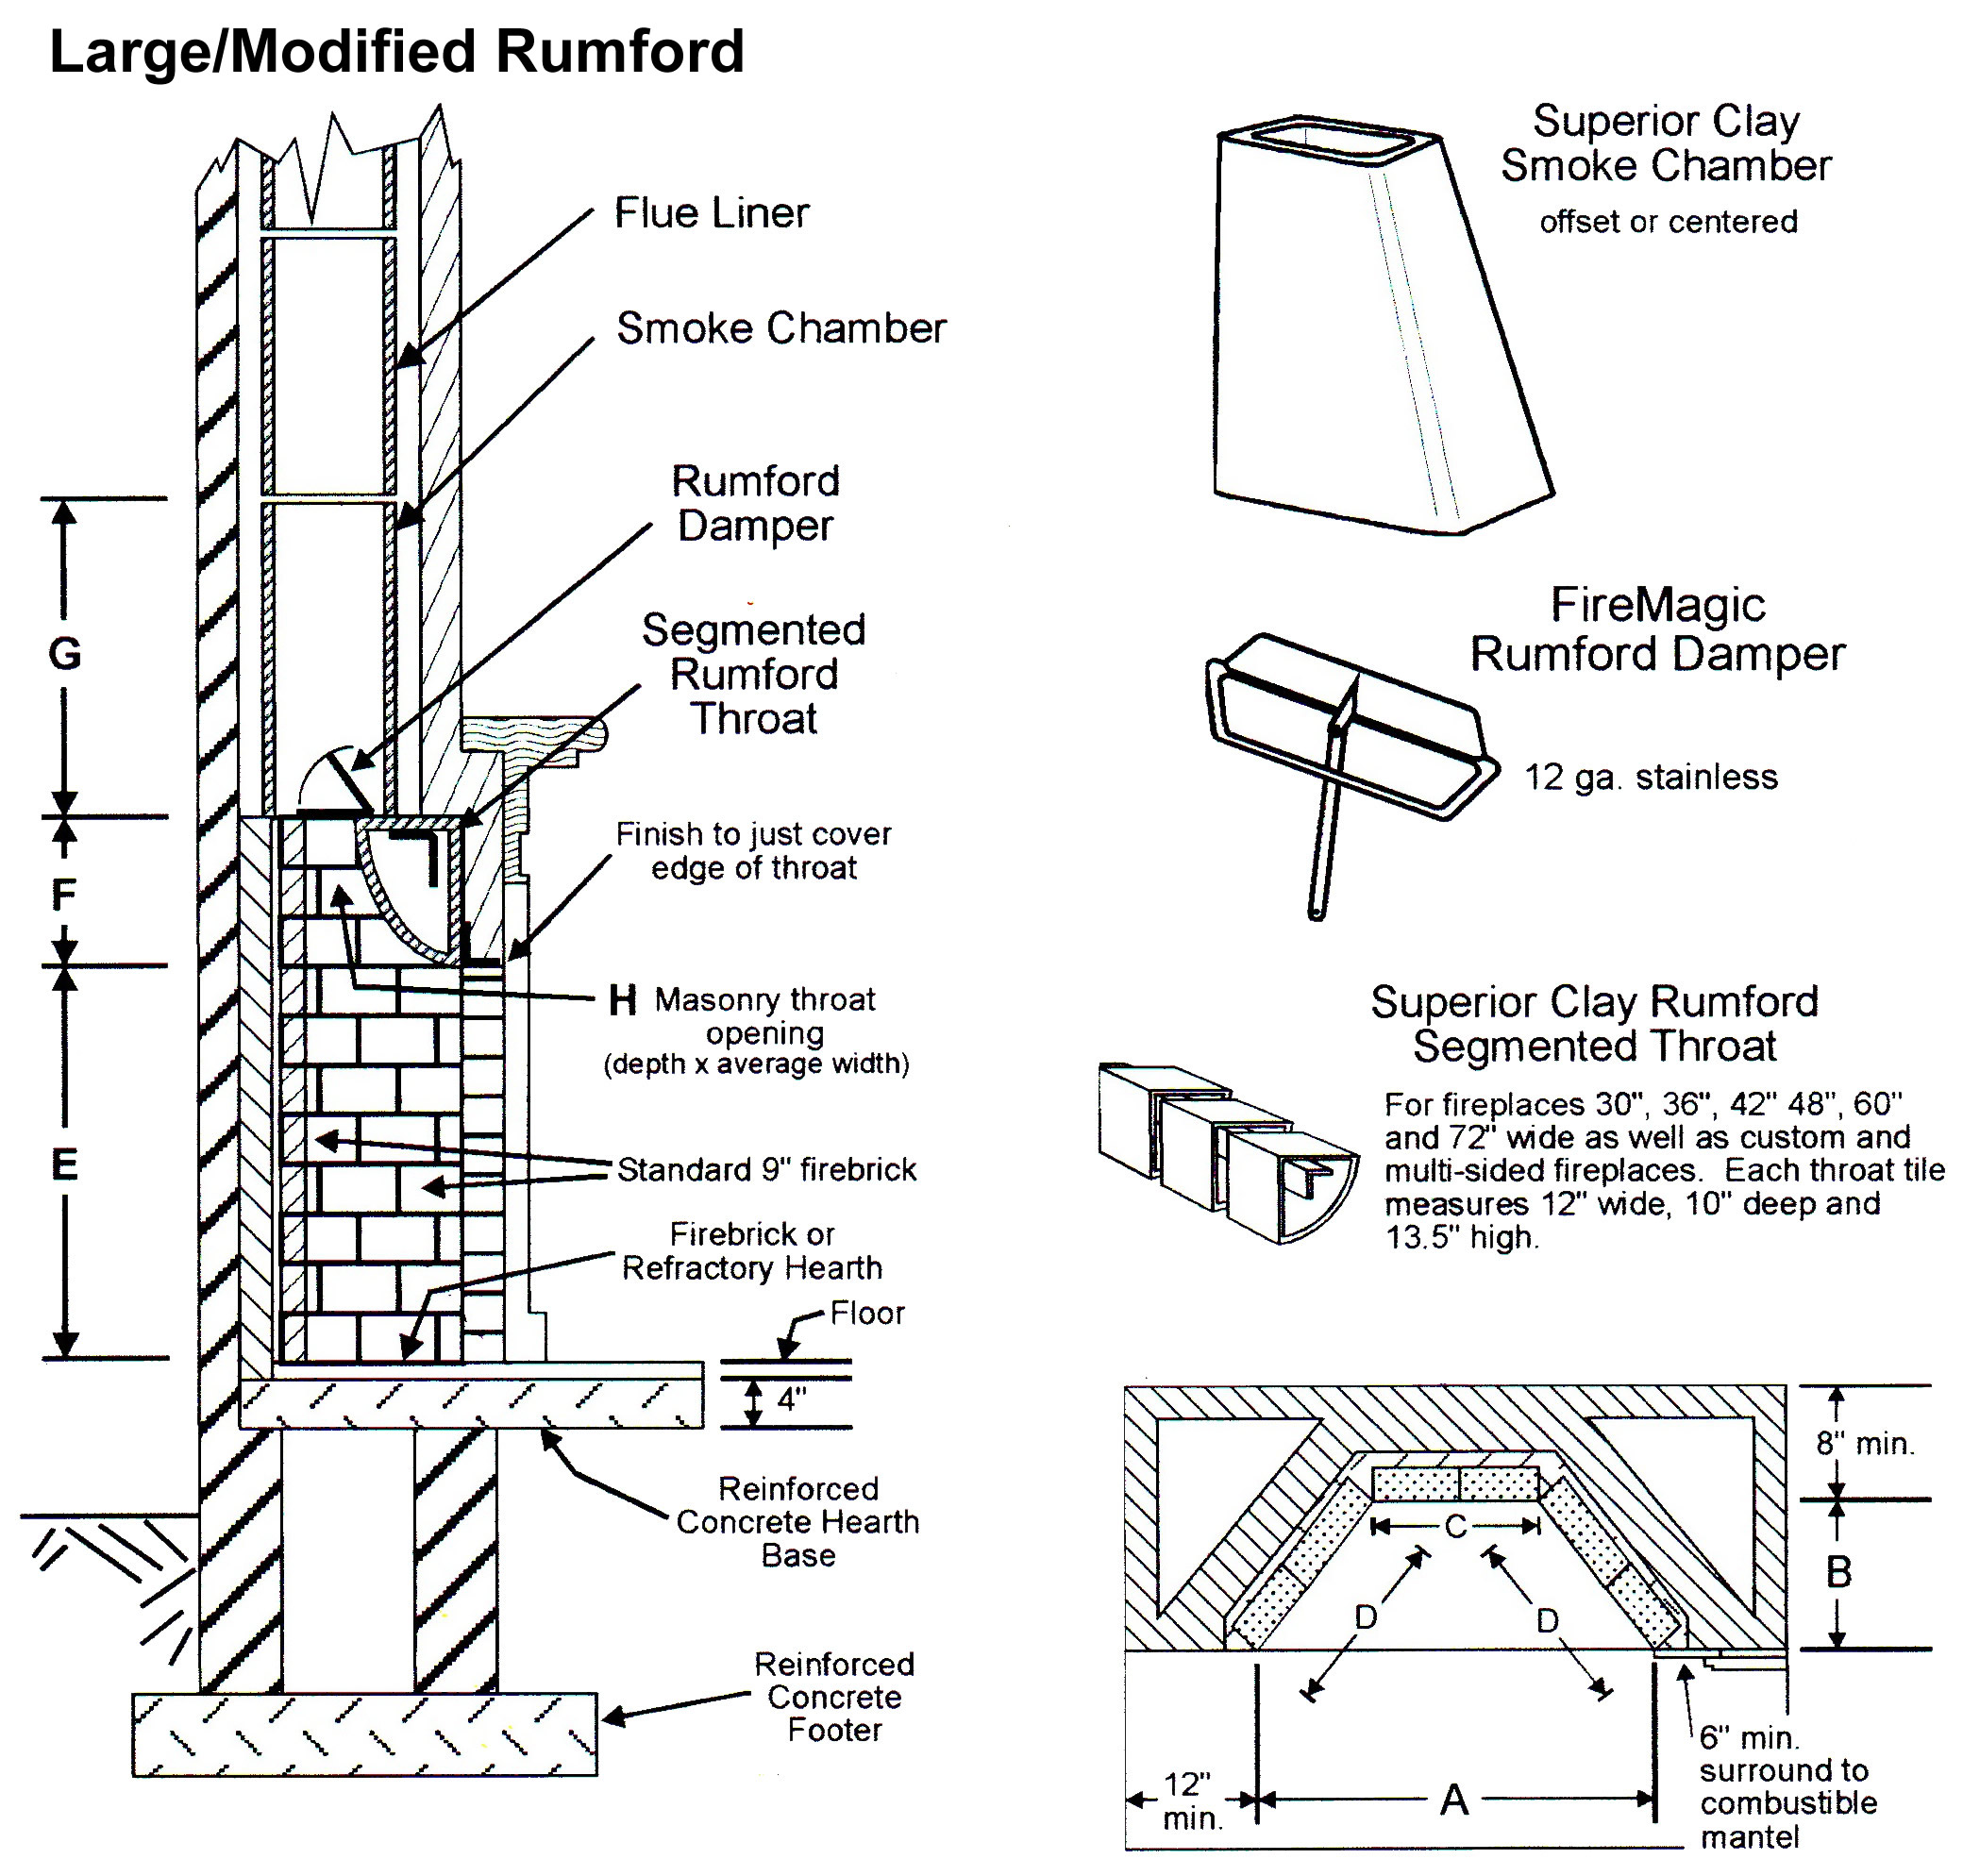 Rumford Fireplace Plans and Instructions Superior Clay